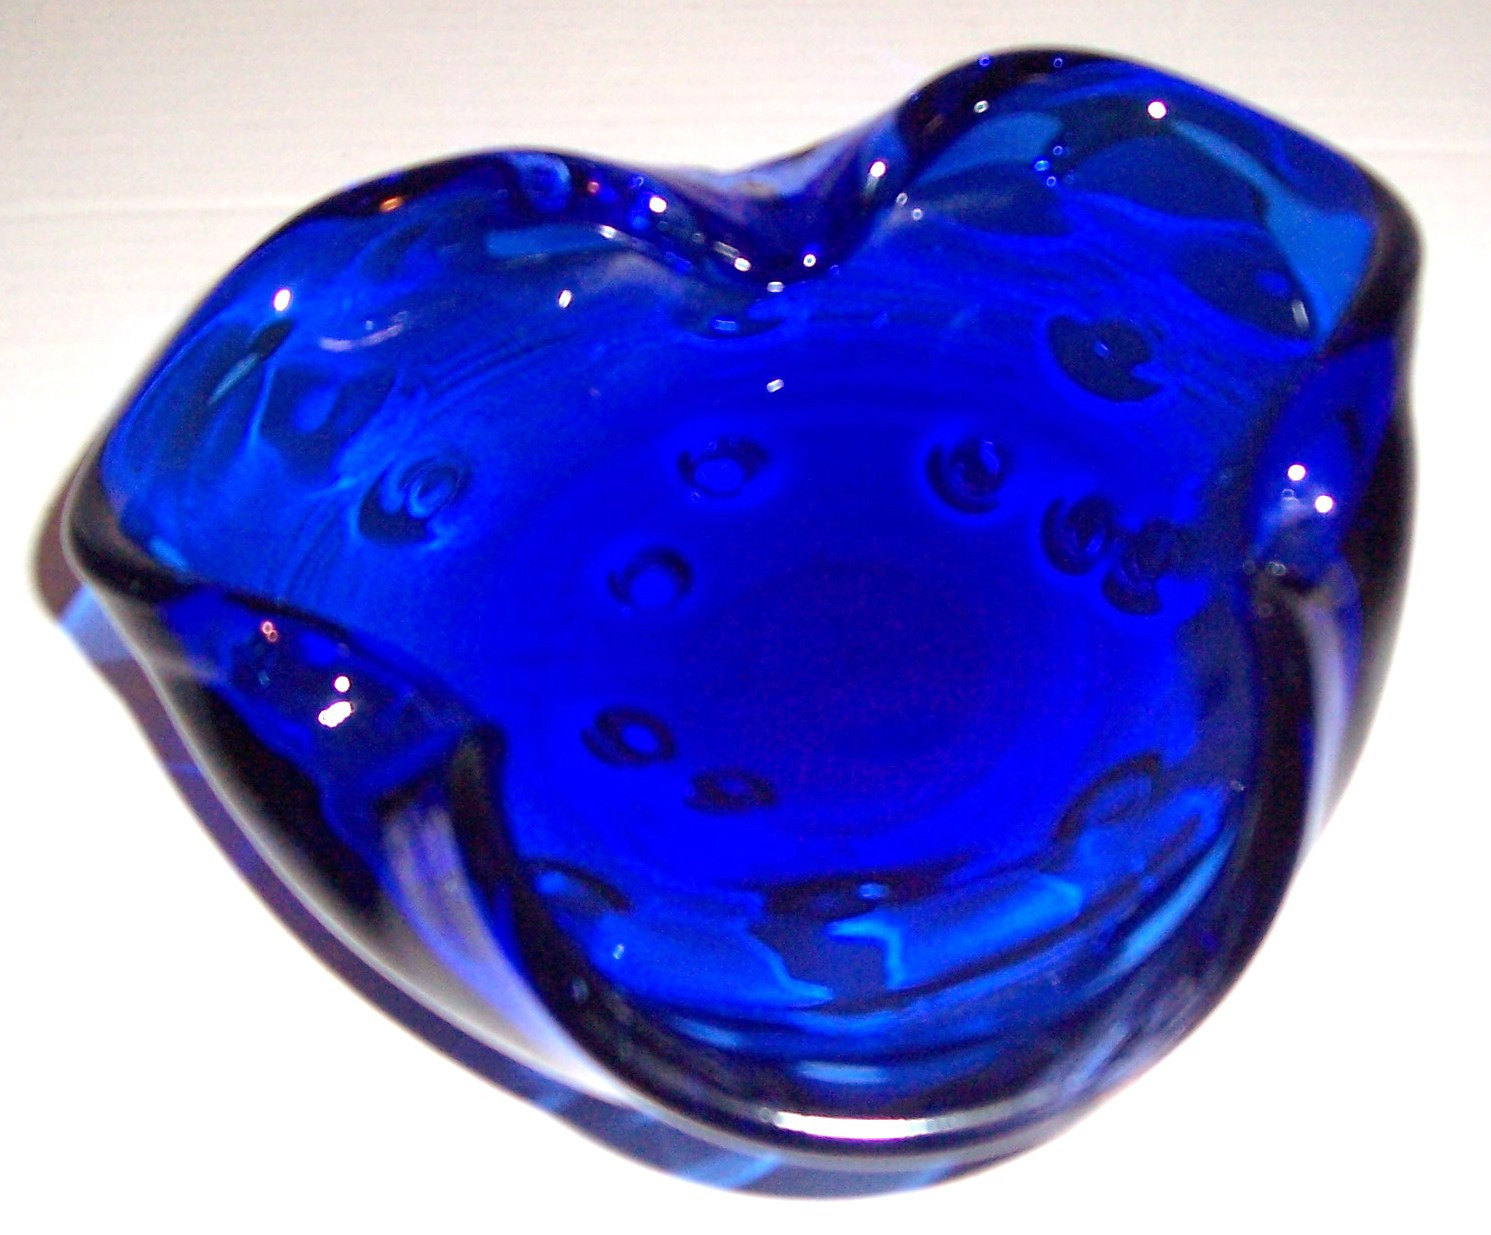 Vintage MURANO Glass Art Cobalt Blue Designed Table Display With Air Bubbles